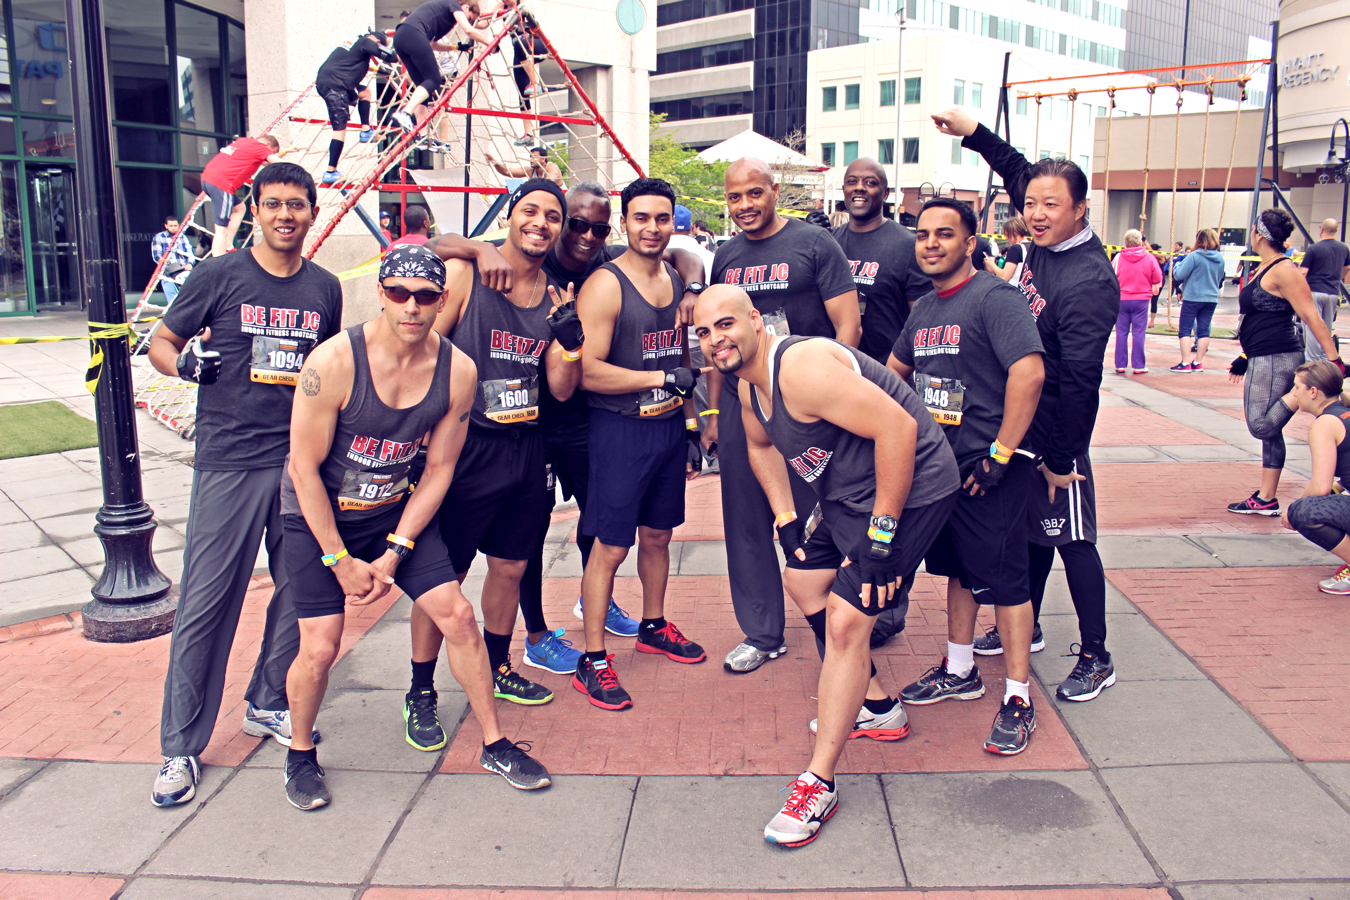 Be Fit JC Men's Fitness City Challenge Race Jersey City May 16 2015 - The guys!